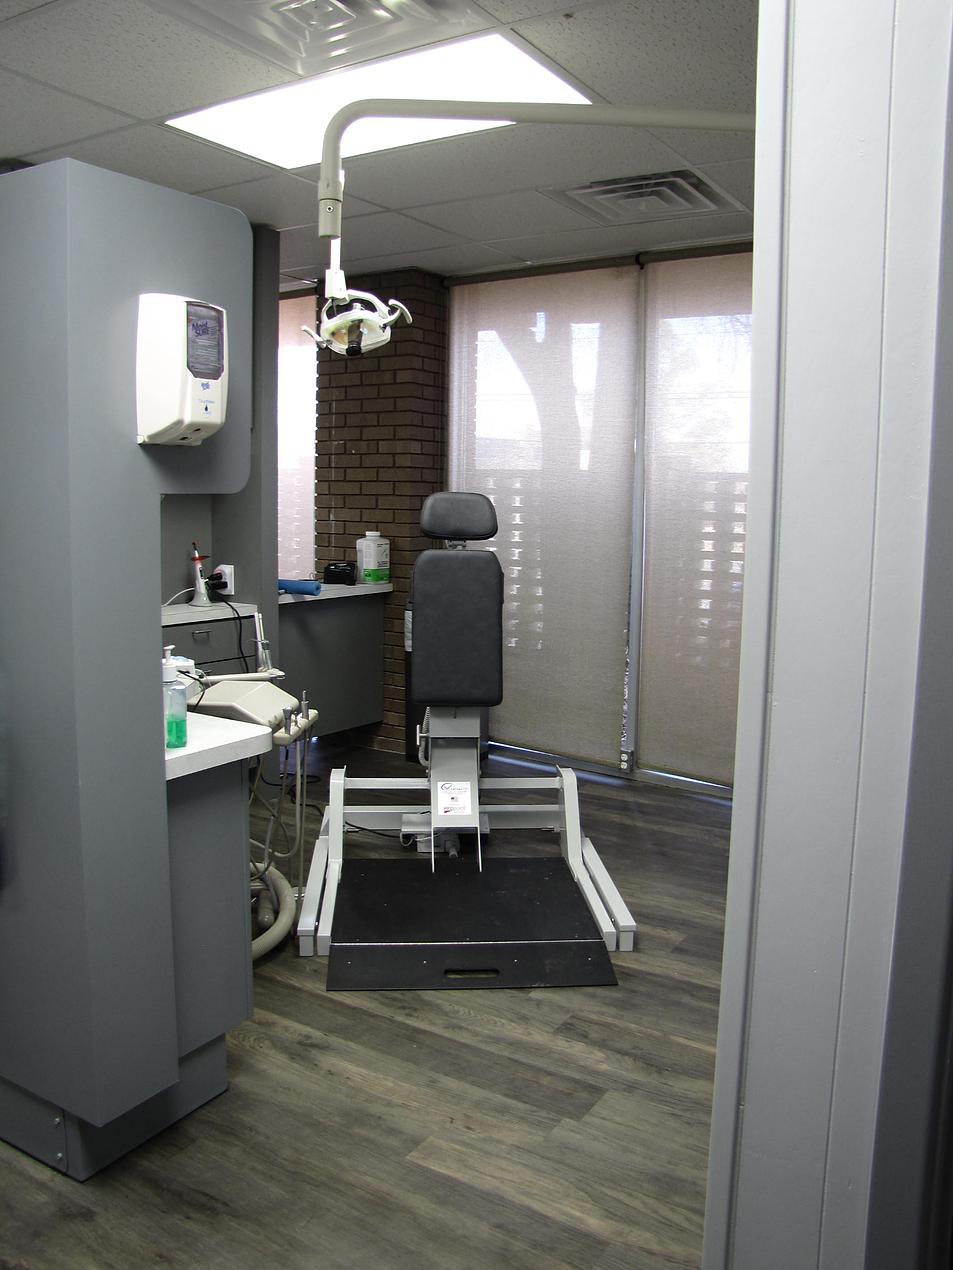 Reddell Russell W DDS - dentist  | Photo 7 of 7 | Address: 2420 Quaker Ave #101, Lubbock, TX 79410, USA | Phone: (806) 701-5066